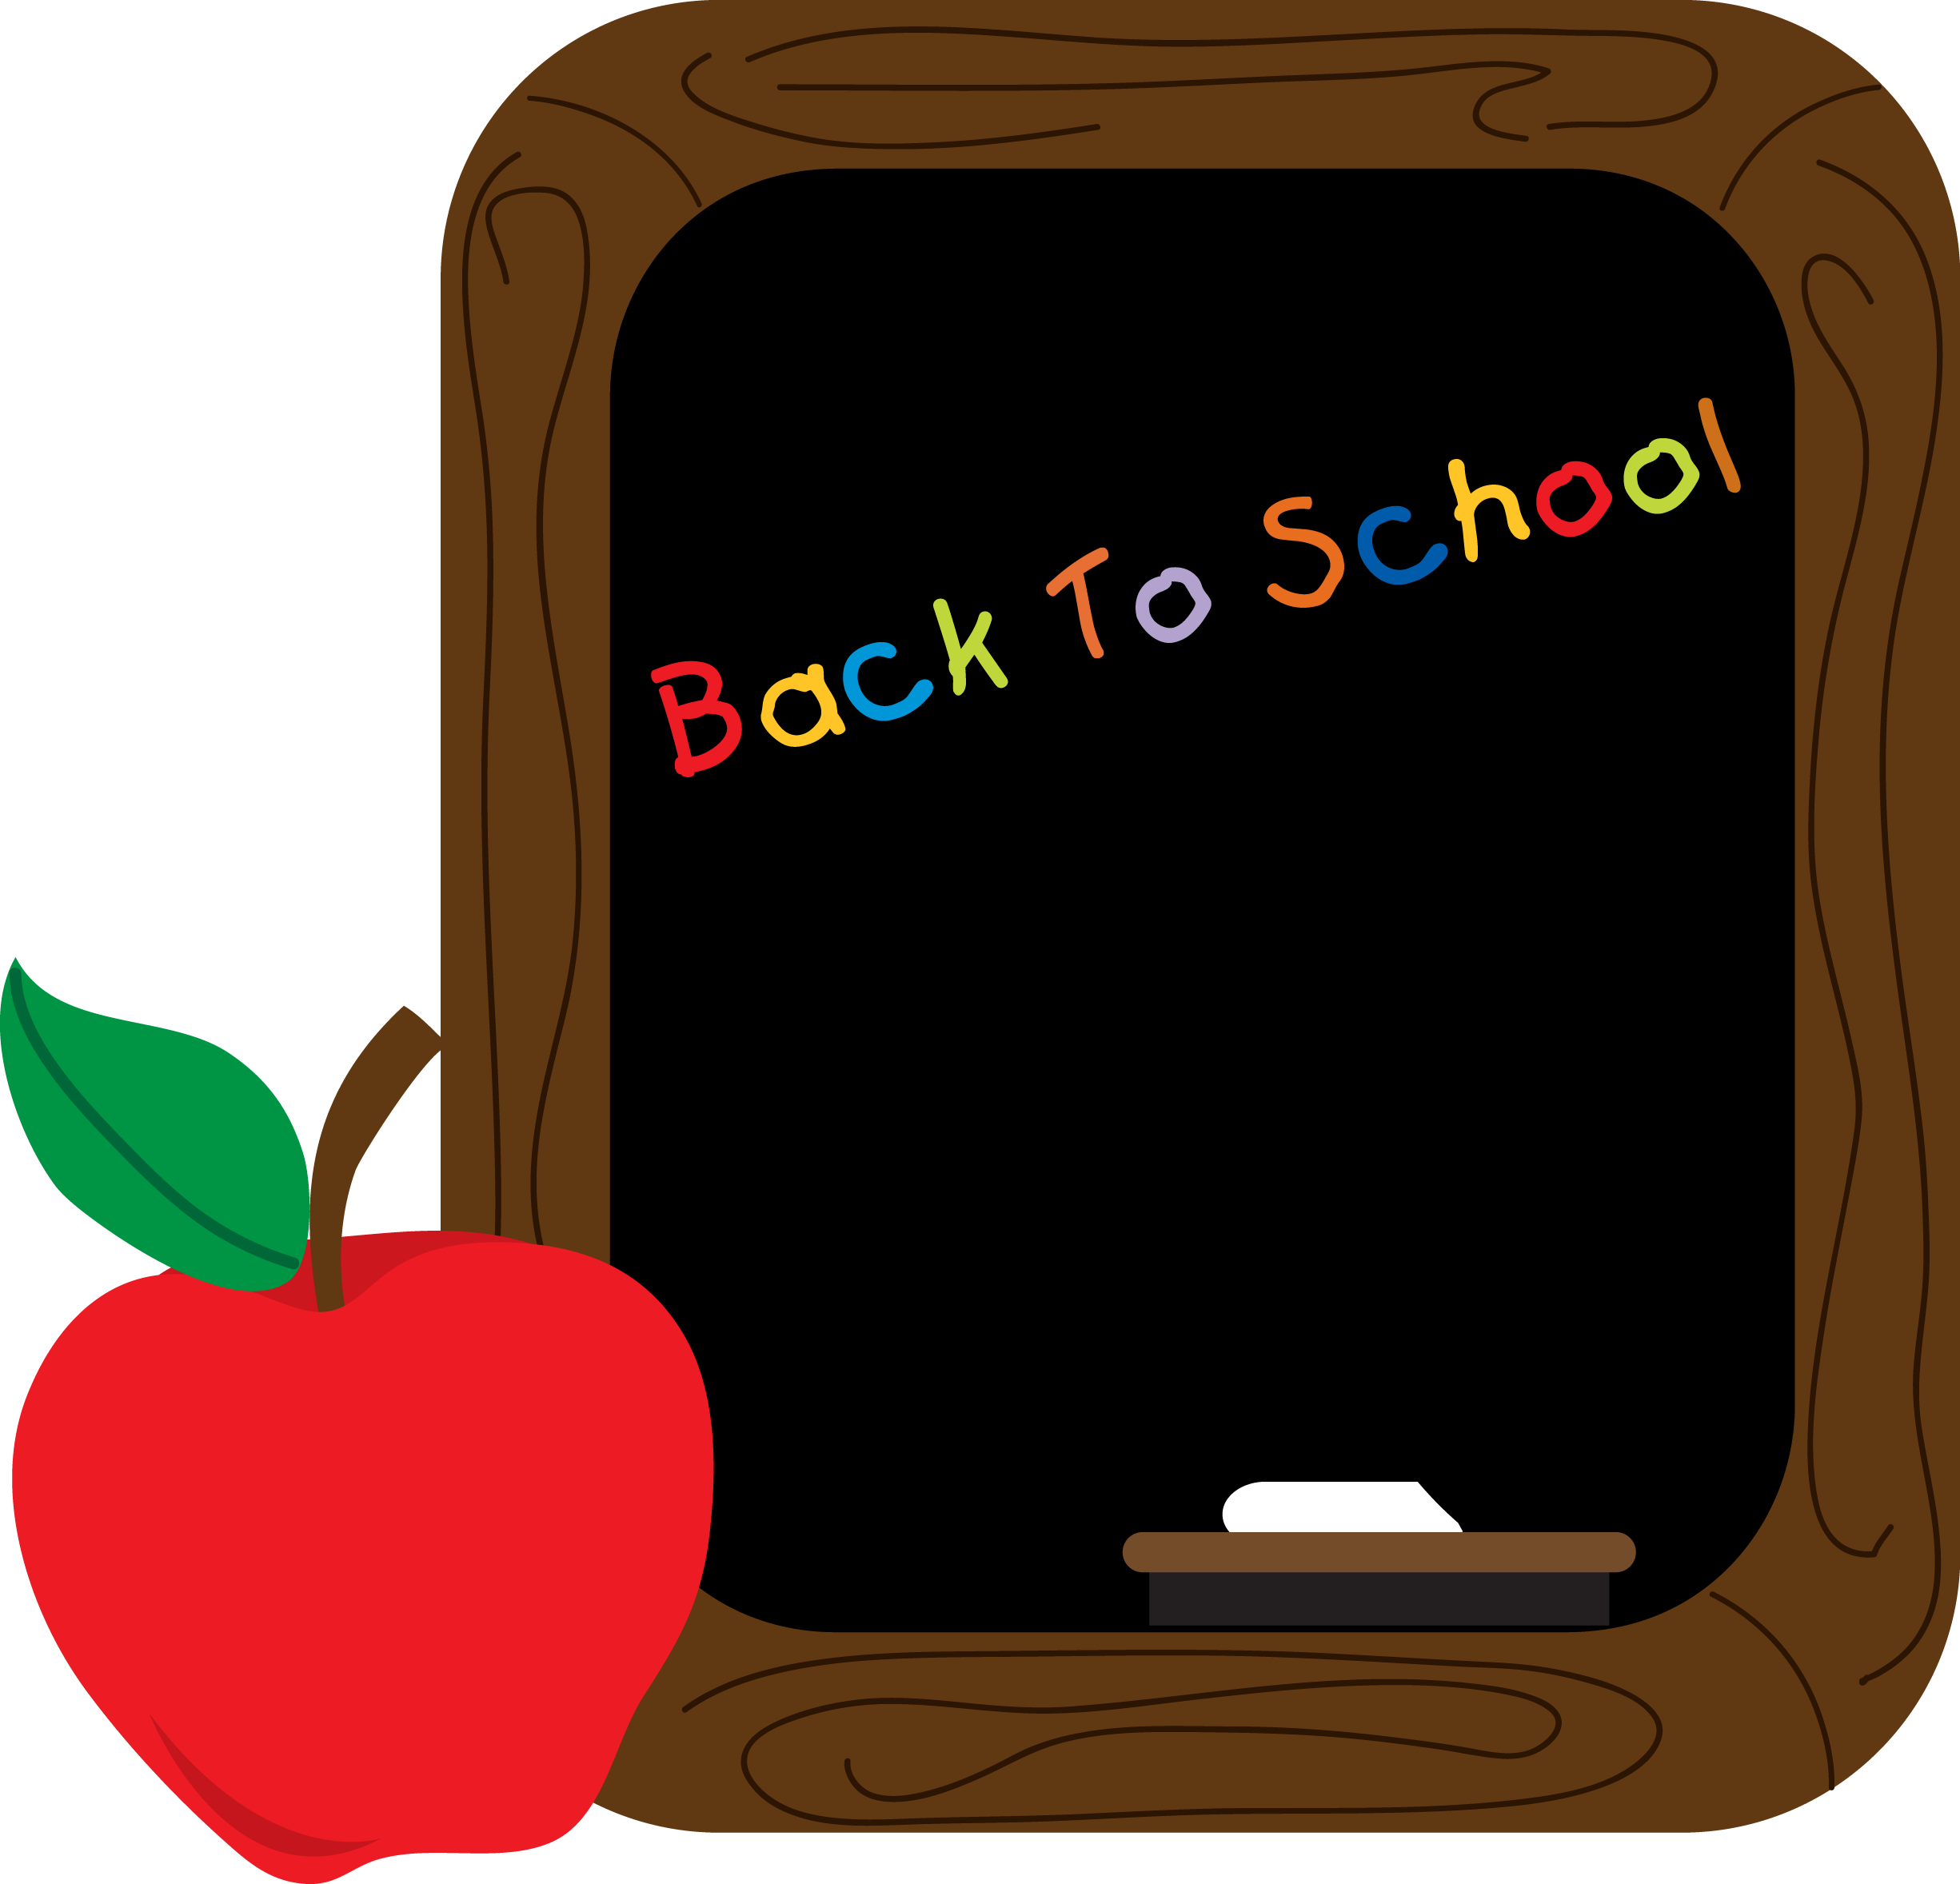 Abc chalkboard clipart clipart black and white download Abc chalkboard clip art at lakeshore learning - dbclipart.com clipart black and white download